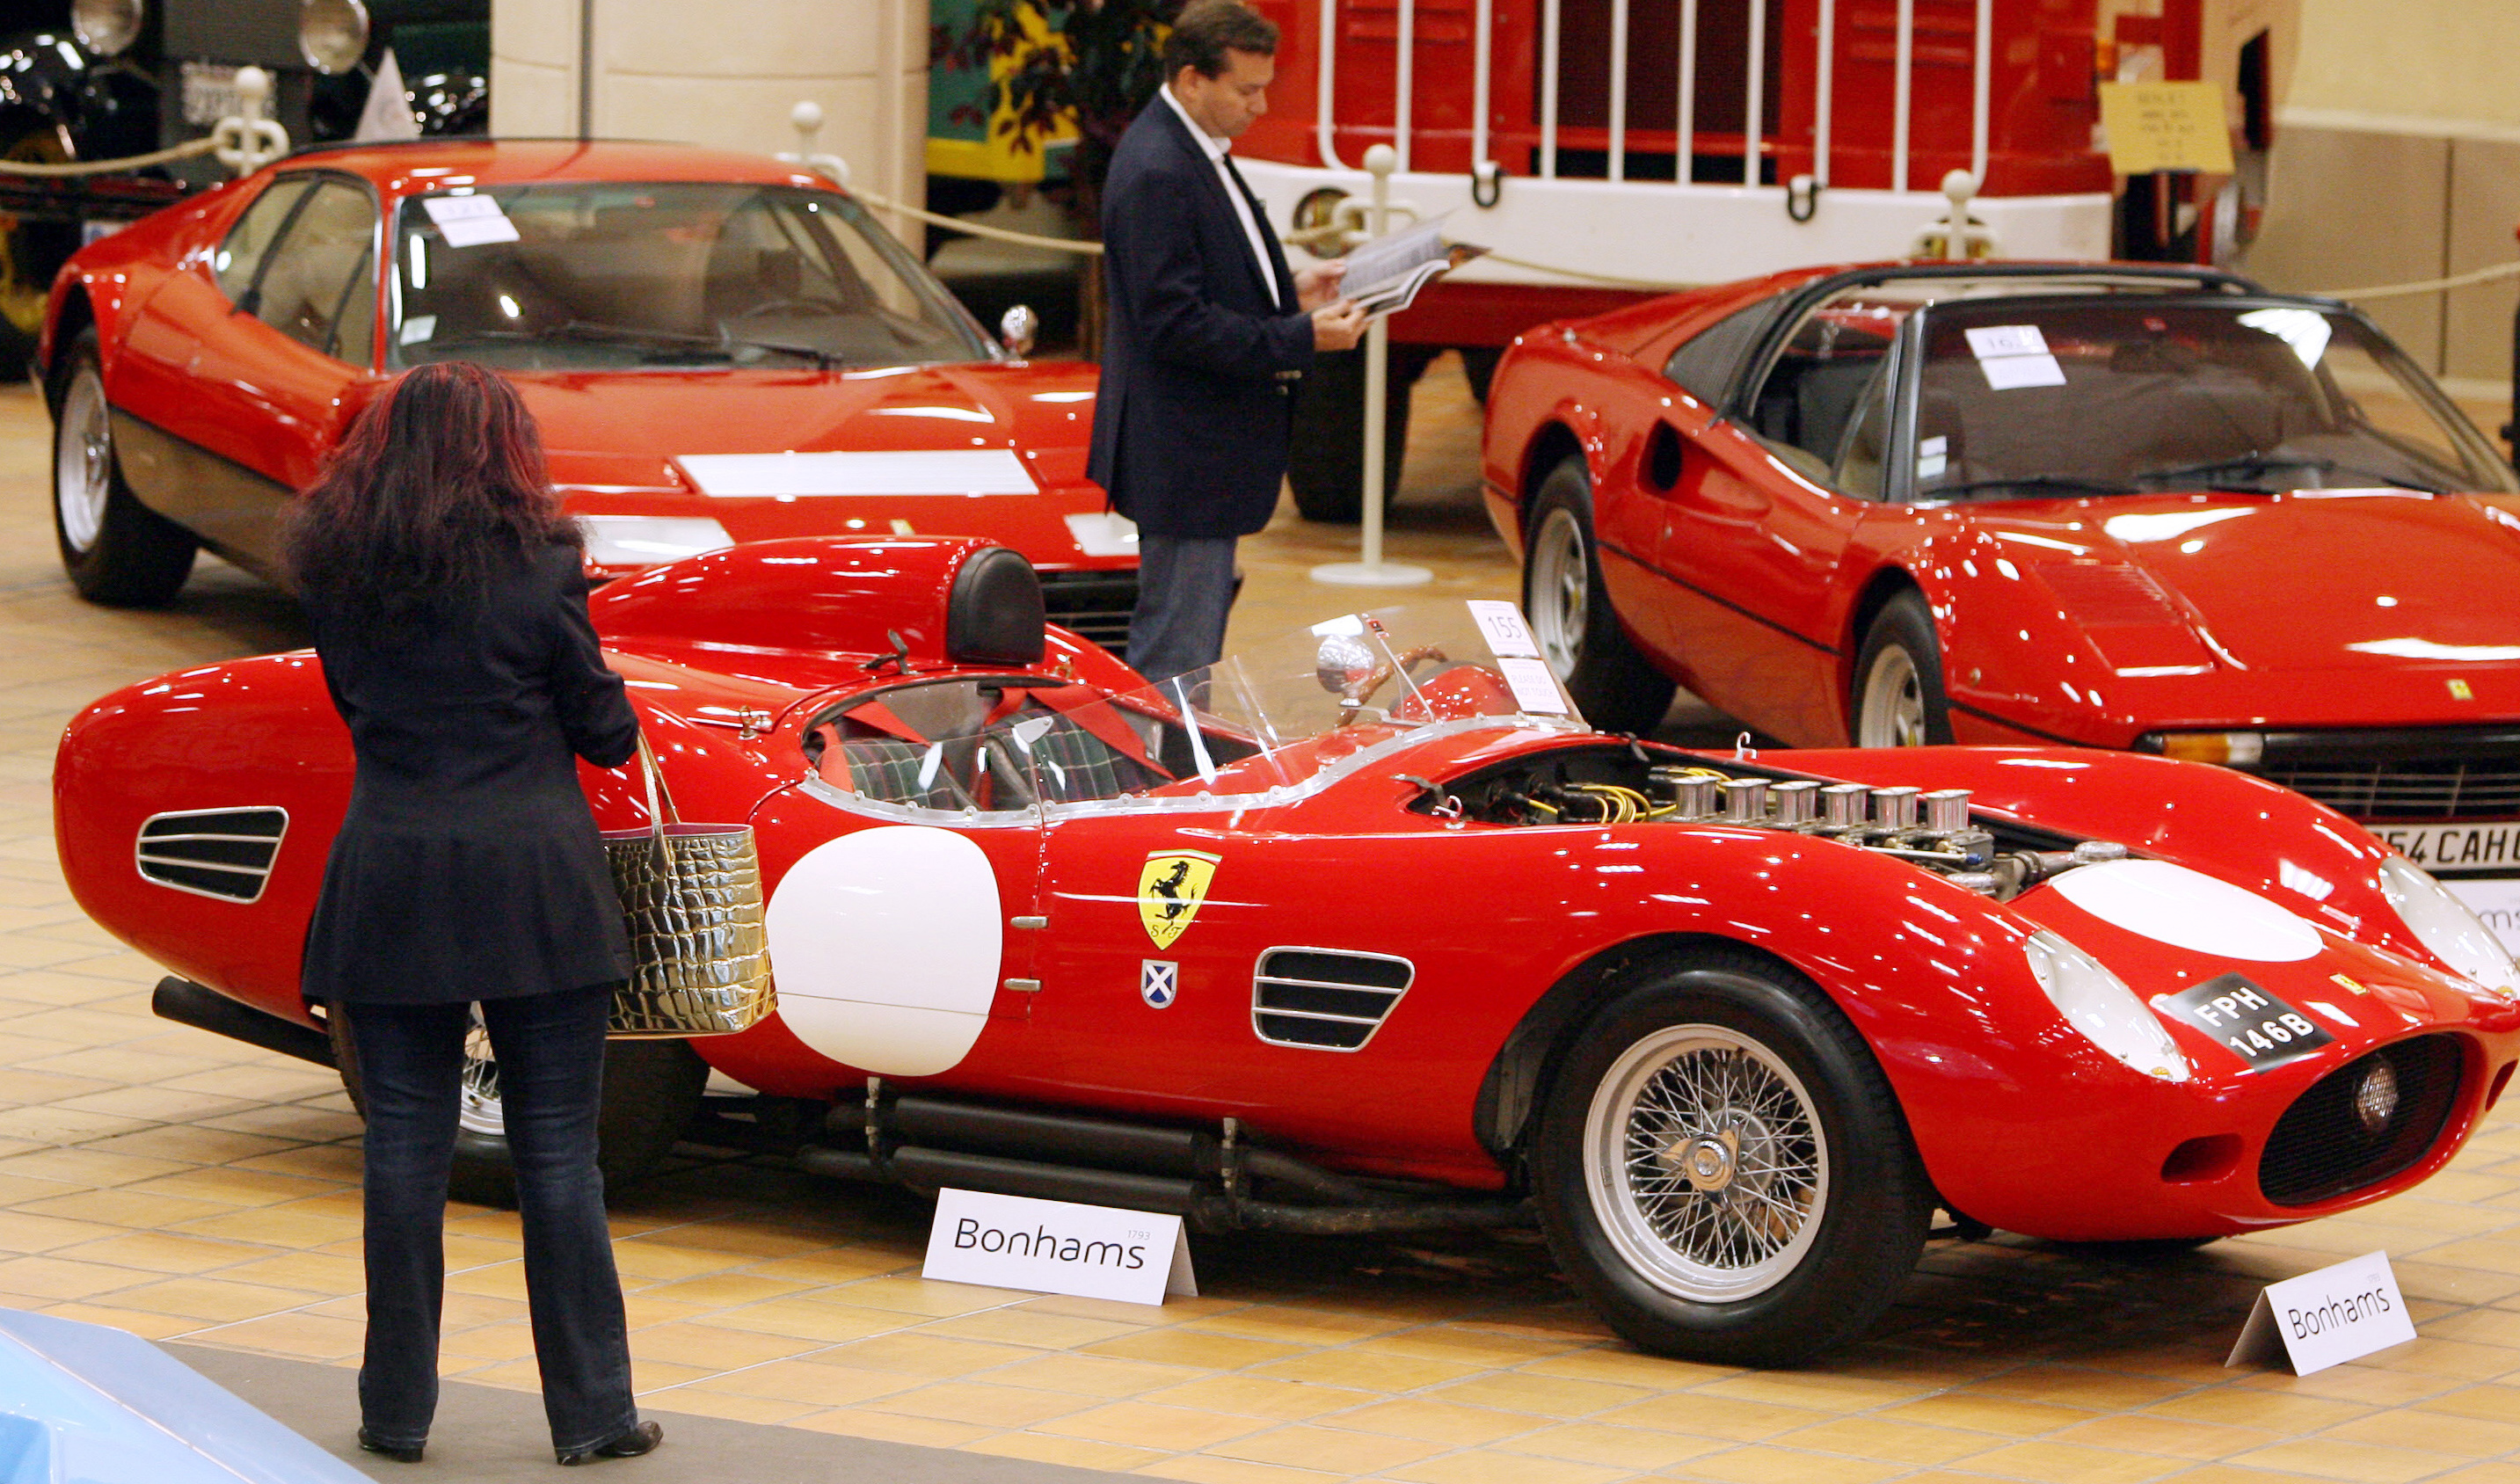 Visitors look at a 1964 Ferrari 250Tr pr